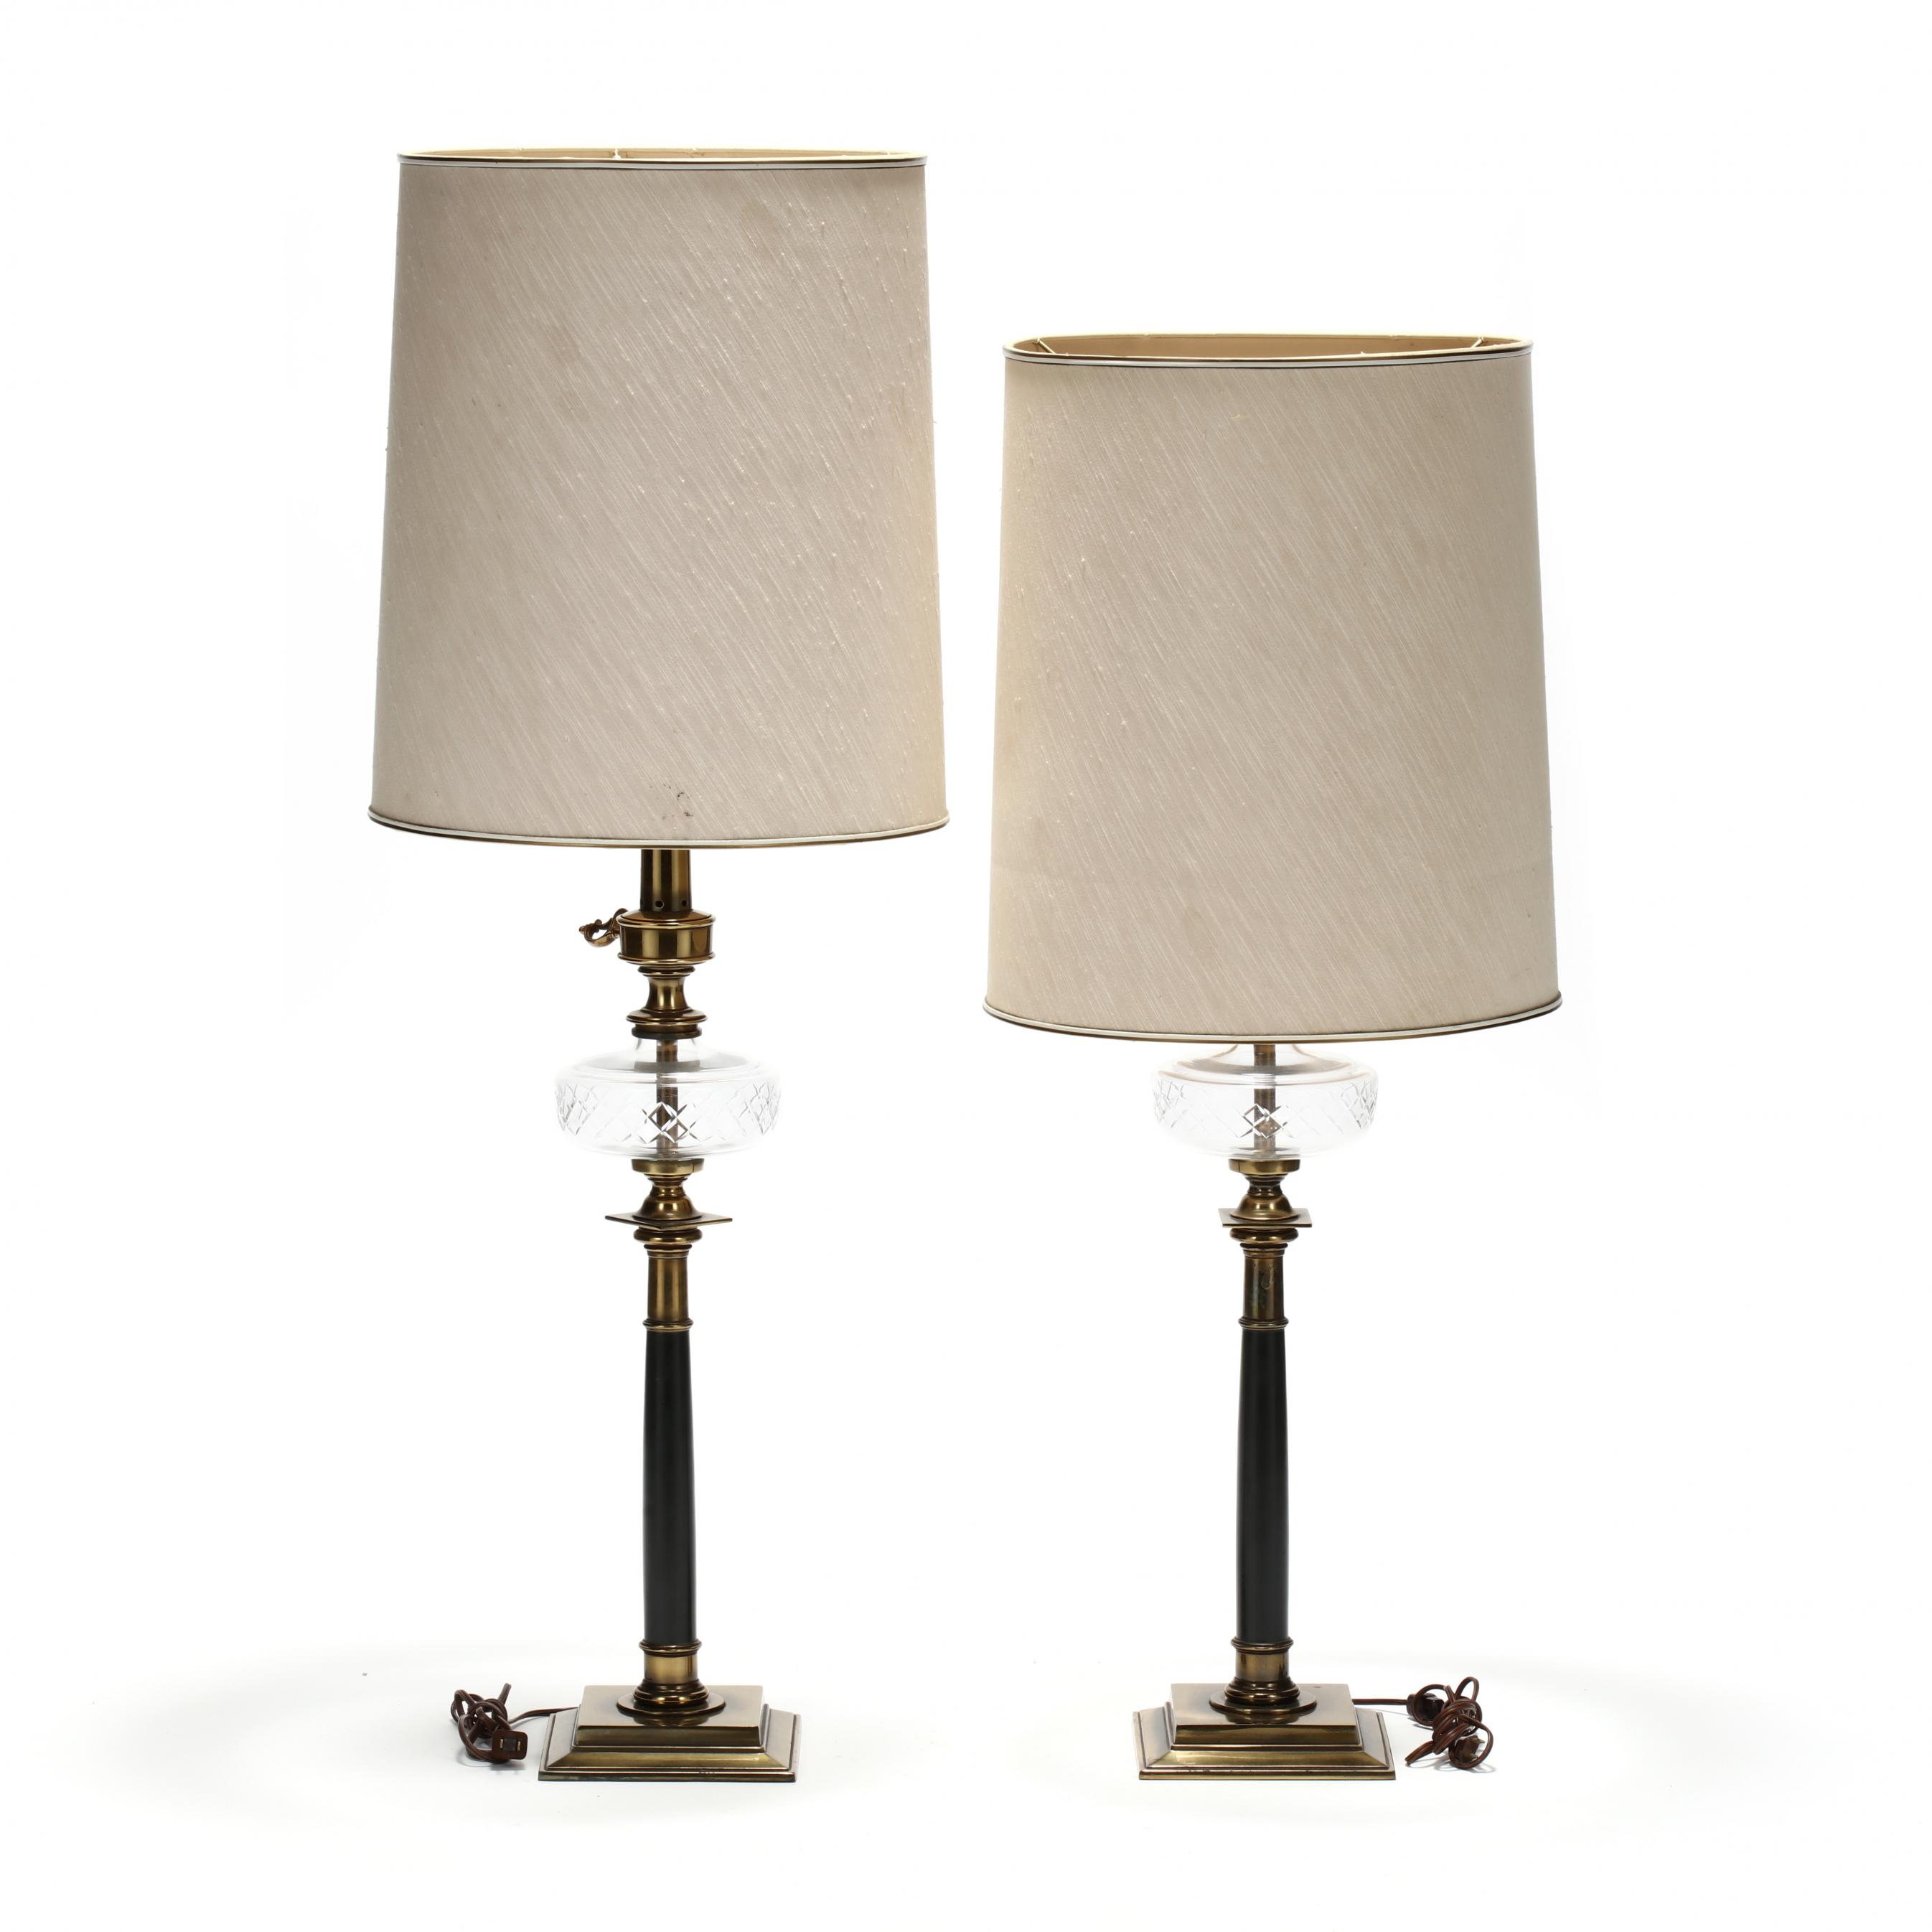 pair-of-mid-century-regency-style-table-lamps